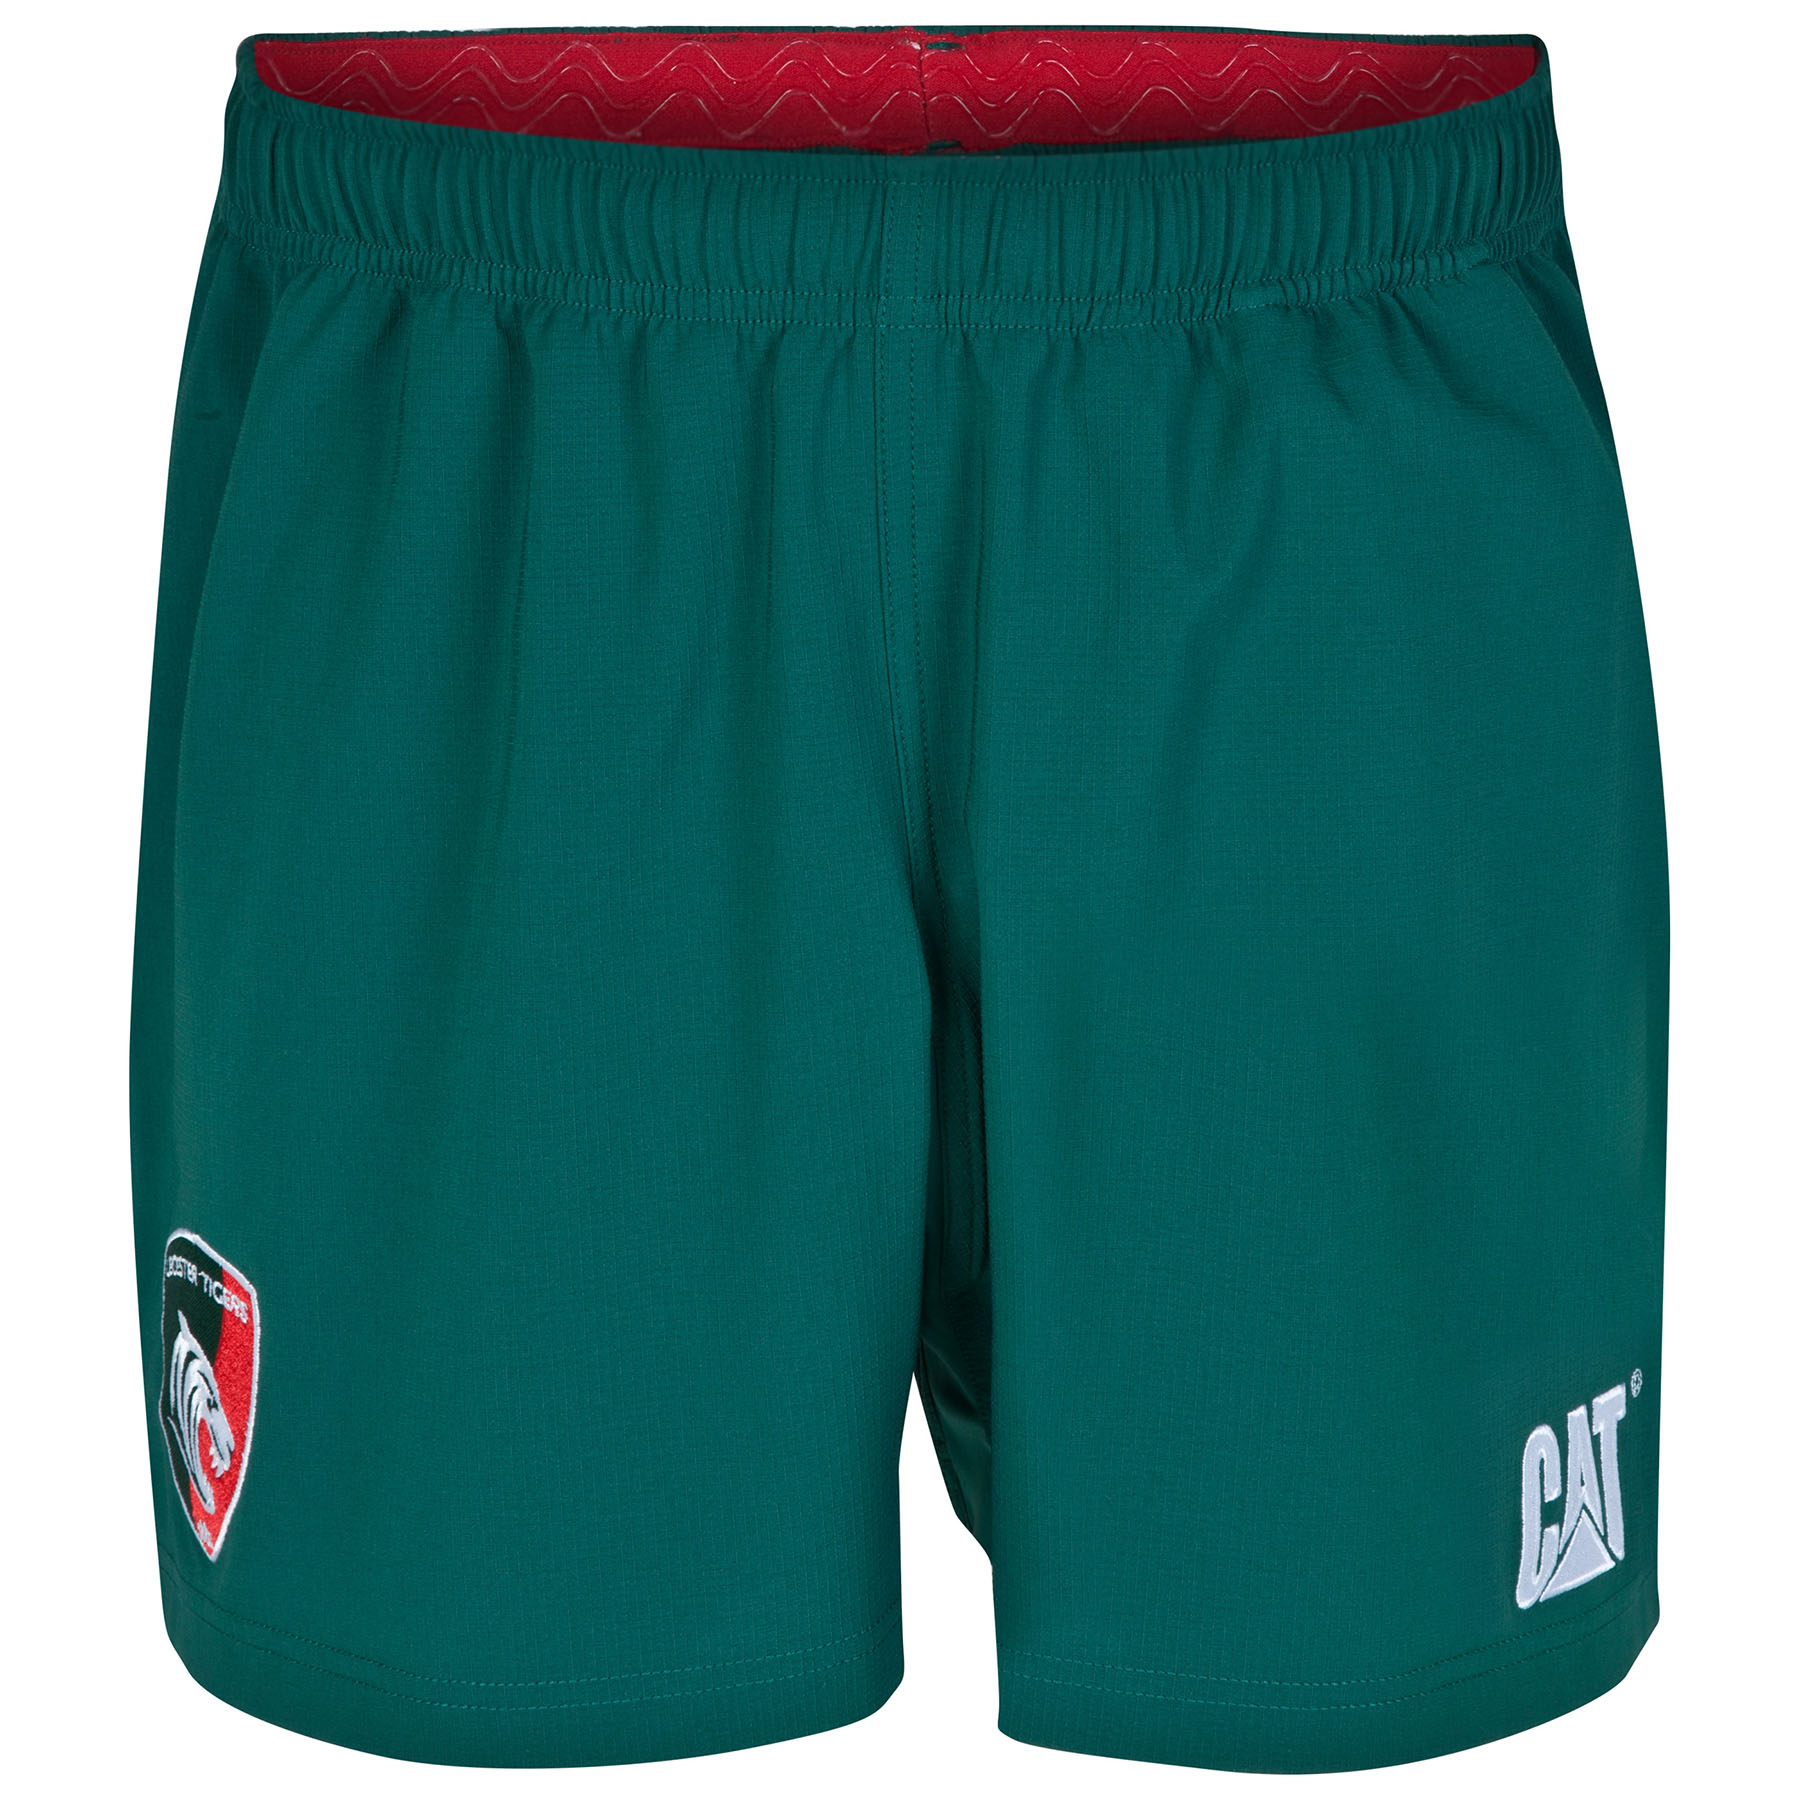 Leicester Tigers Home Short 2014/15